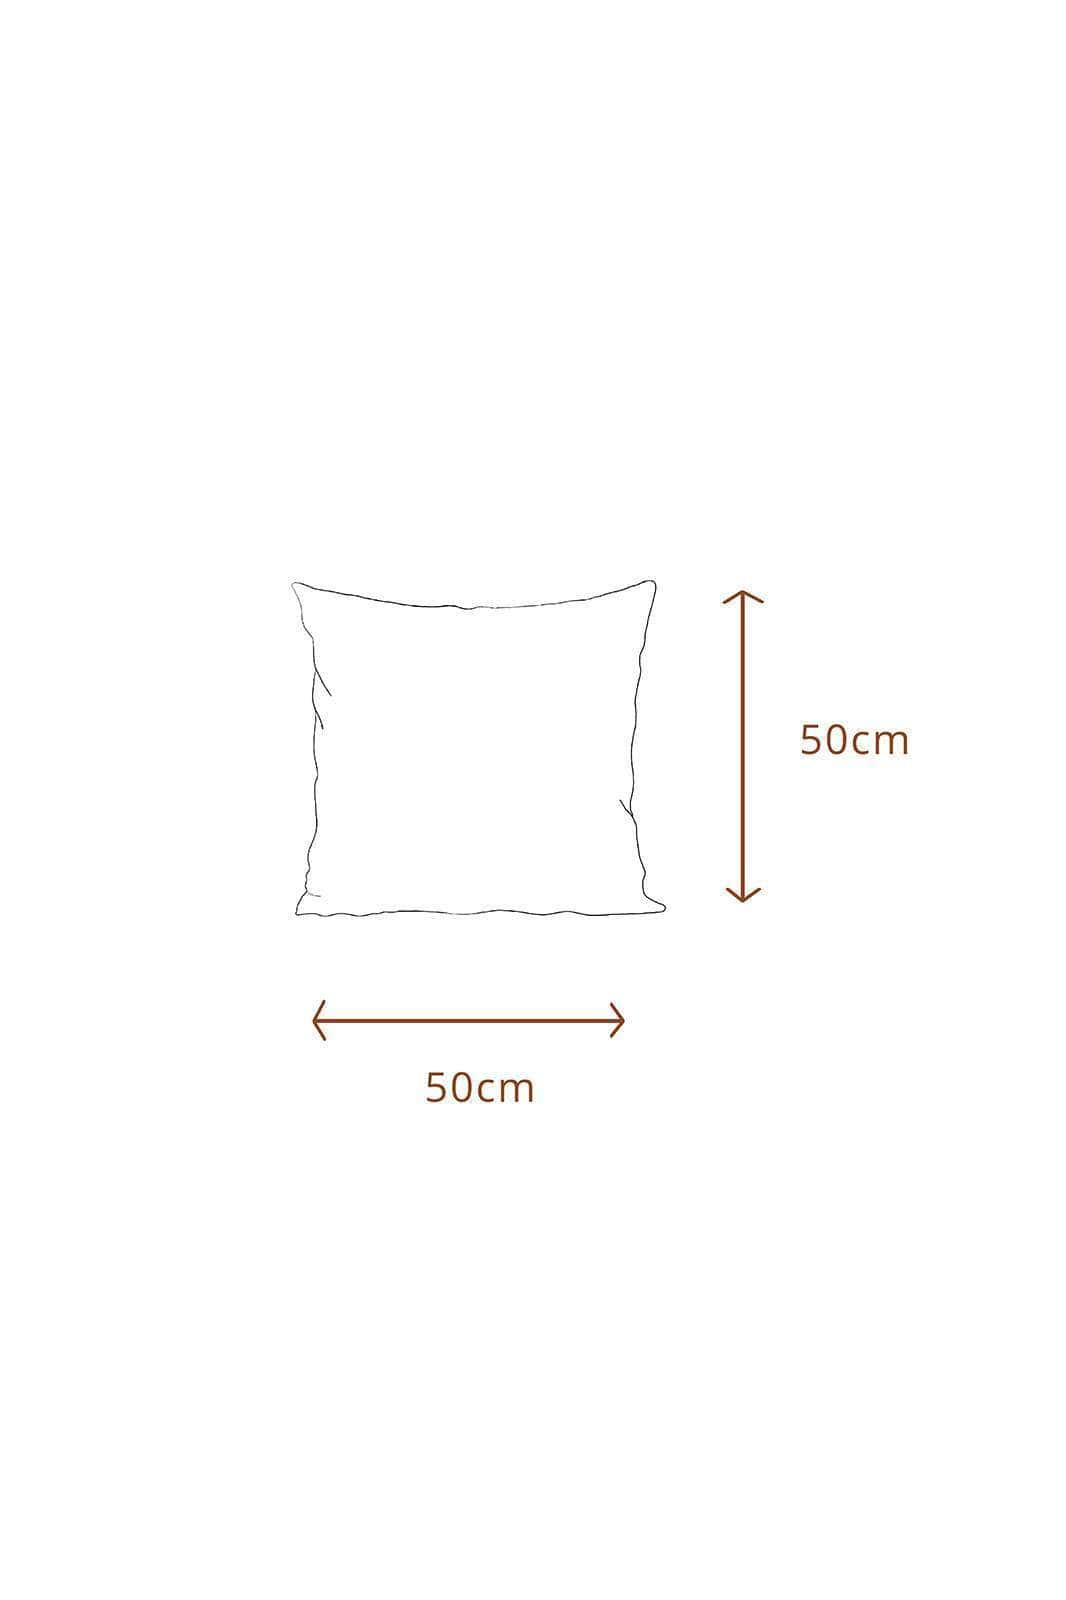 arkitaip Pillowslips 50 x 50cm / White The Ruffled Casita Linen Pillowslips Set in White